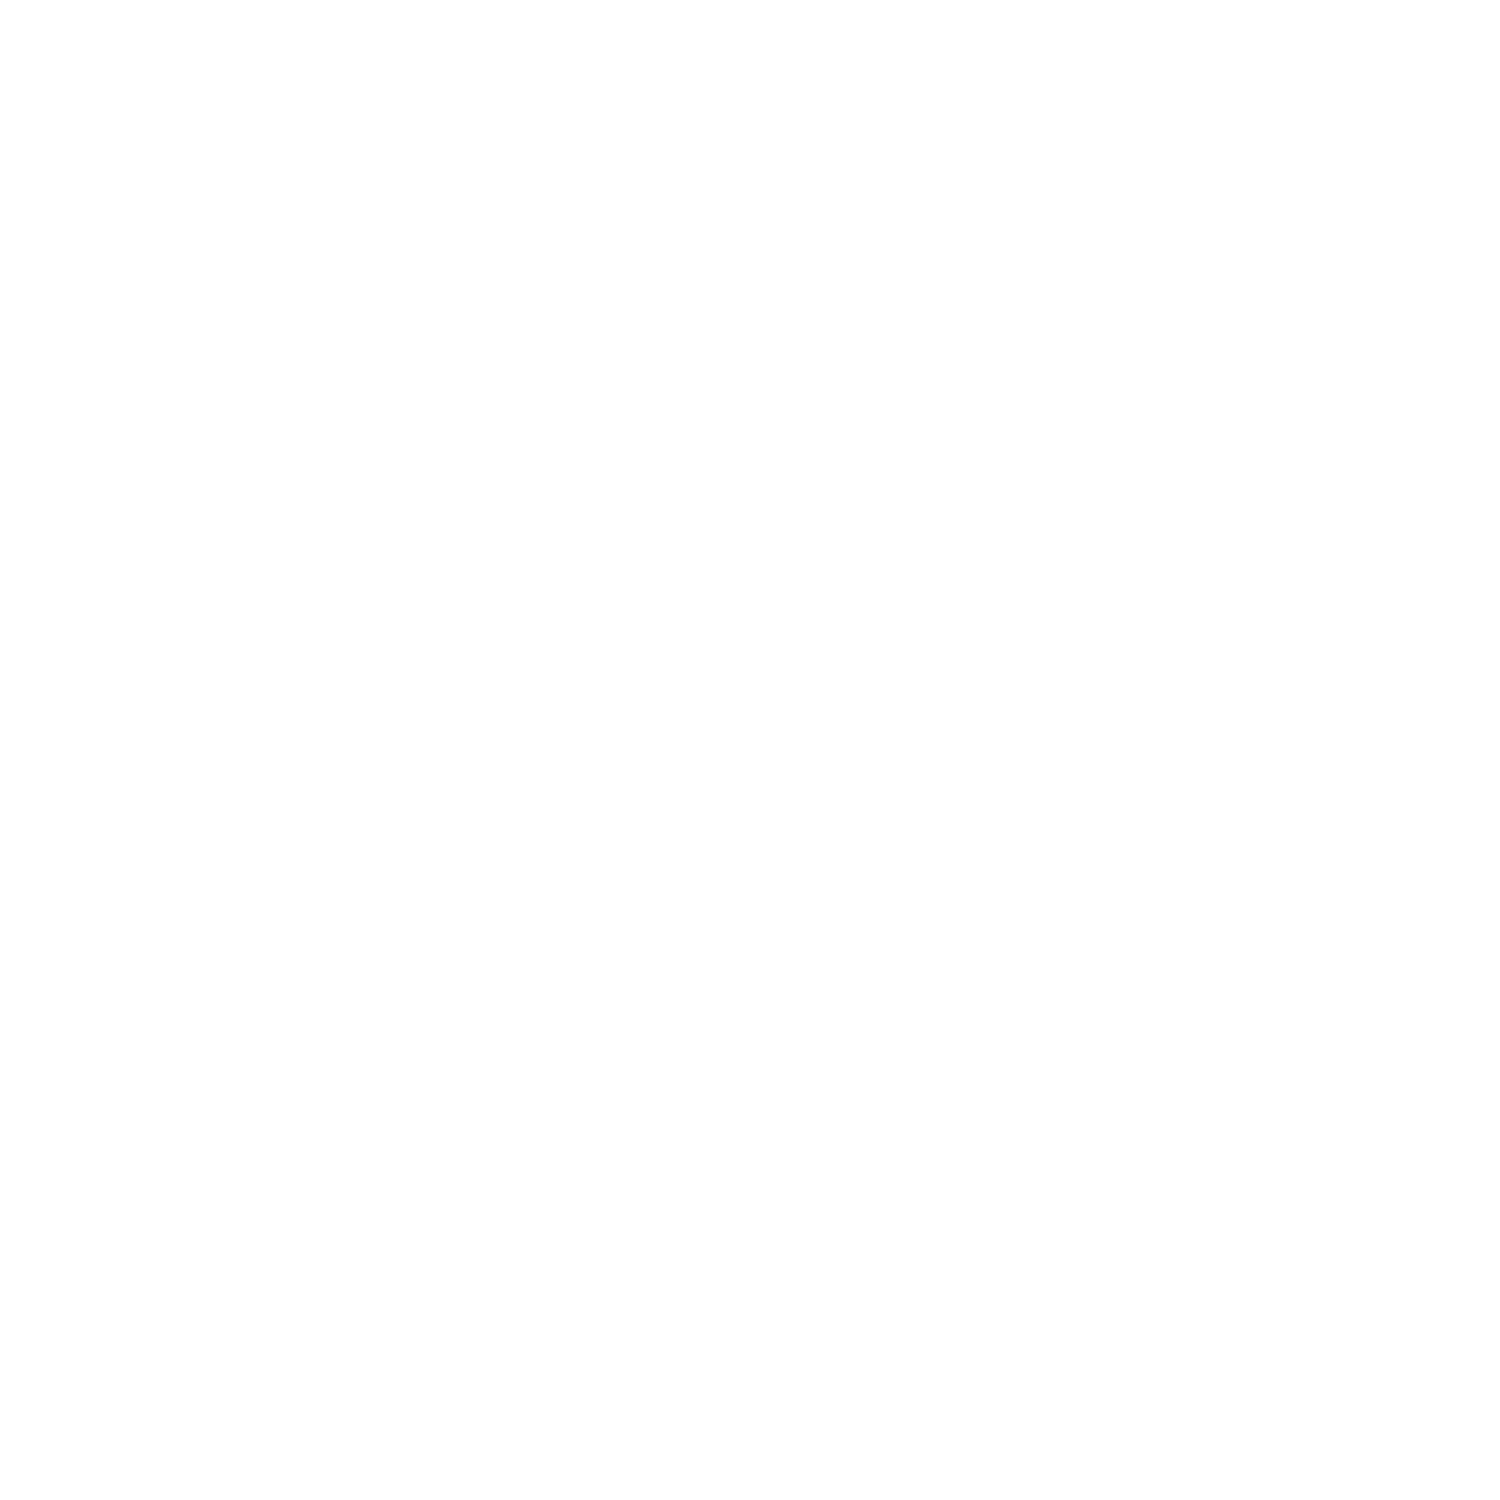 Chabad Jewish Center of Renton